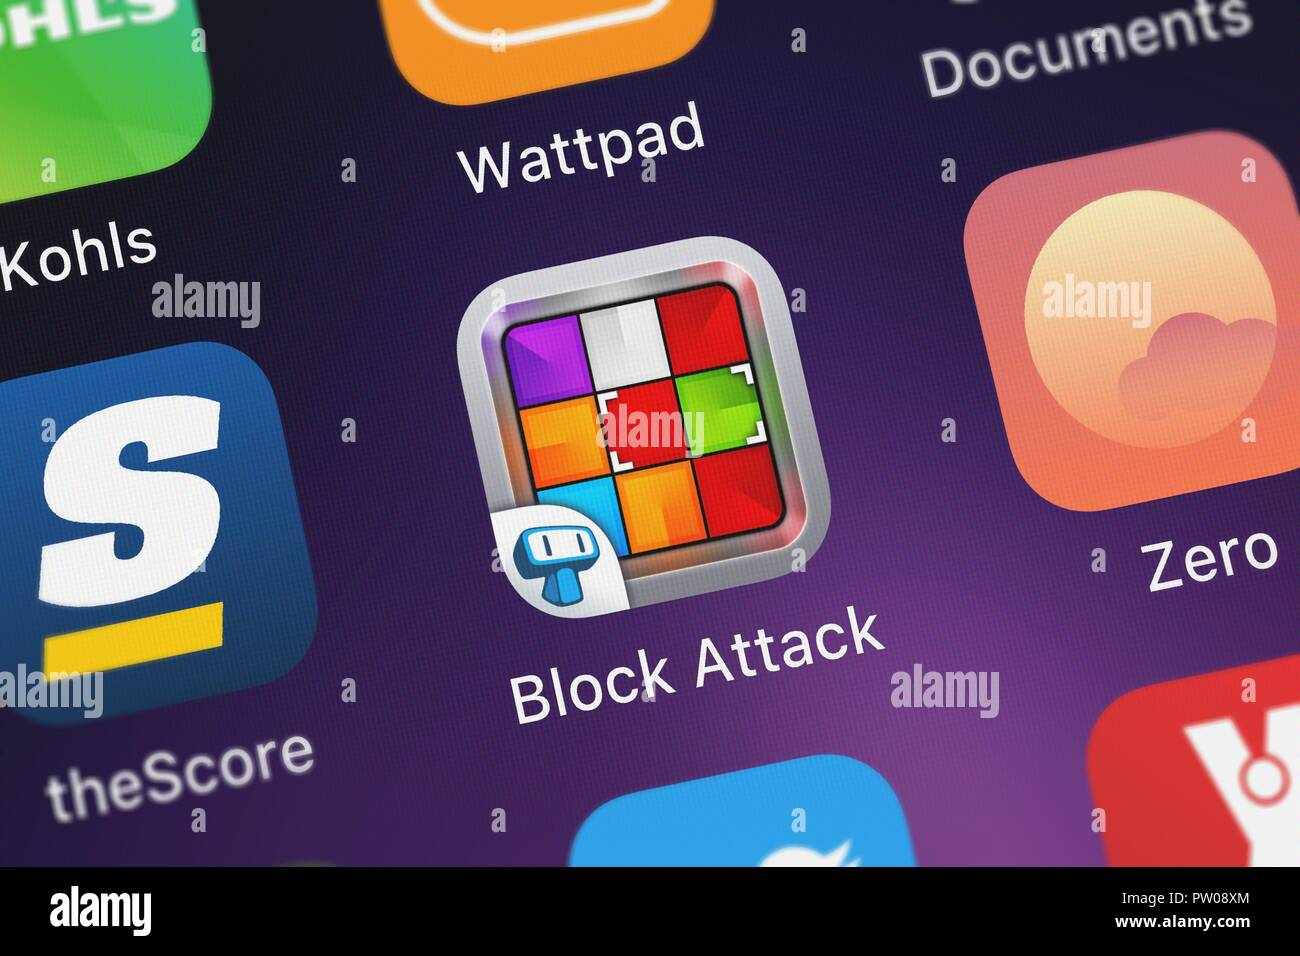 London United Kingdom October 11 2018 Close Up Of The Block Attack Logic Match 3 Board Game Icon From Tapps Tecnologia Da Informacao Ltda On A Stock Photo Alamy